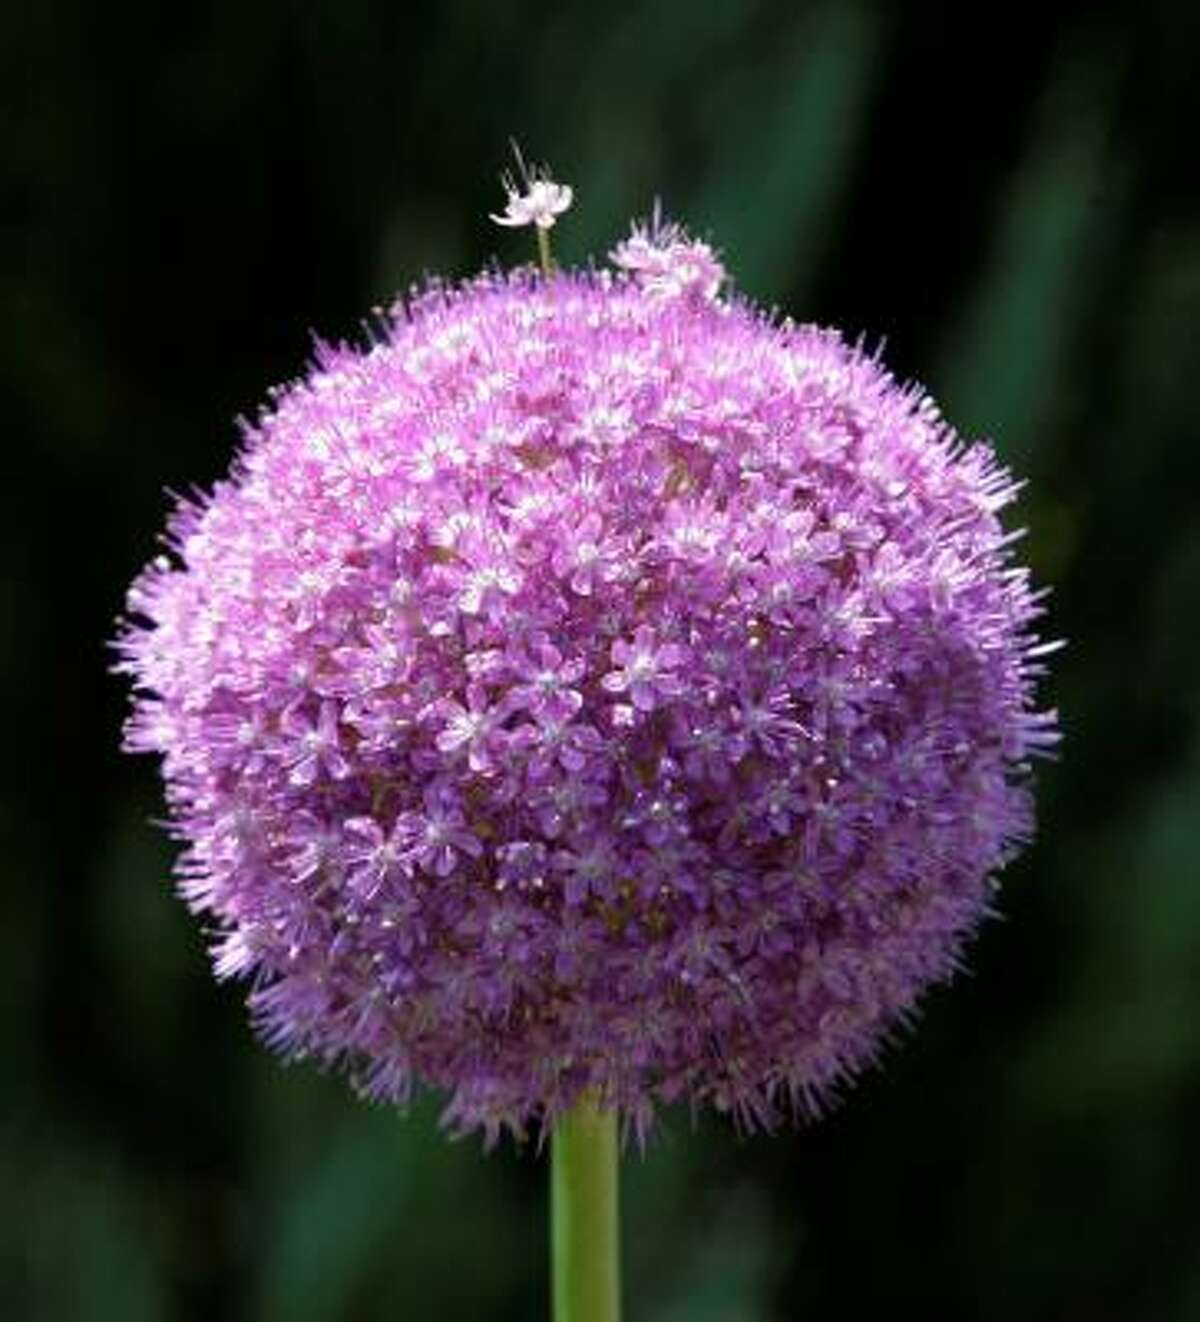 ALLIUM: Allium giganteum Bulbs in the Plant Database | Top 10 naturalizing bulbs | Plant bulbs by the holiday | Top 10 bulbs to plant in fall :: HoustonGrows.com